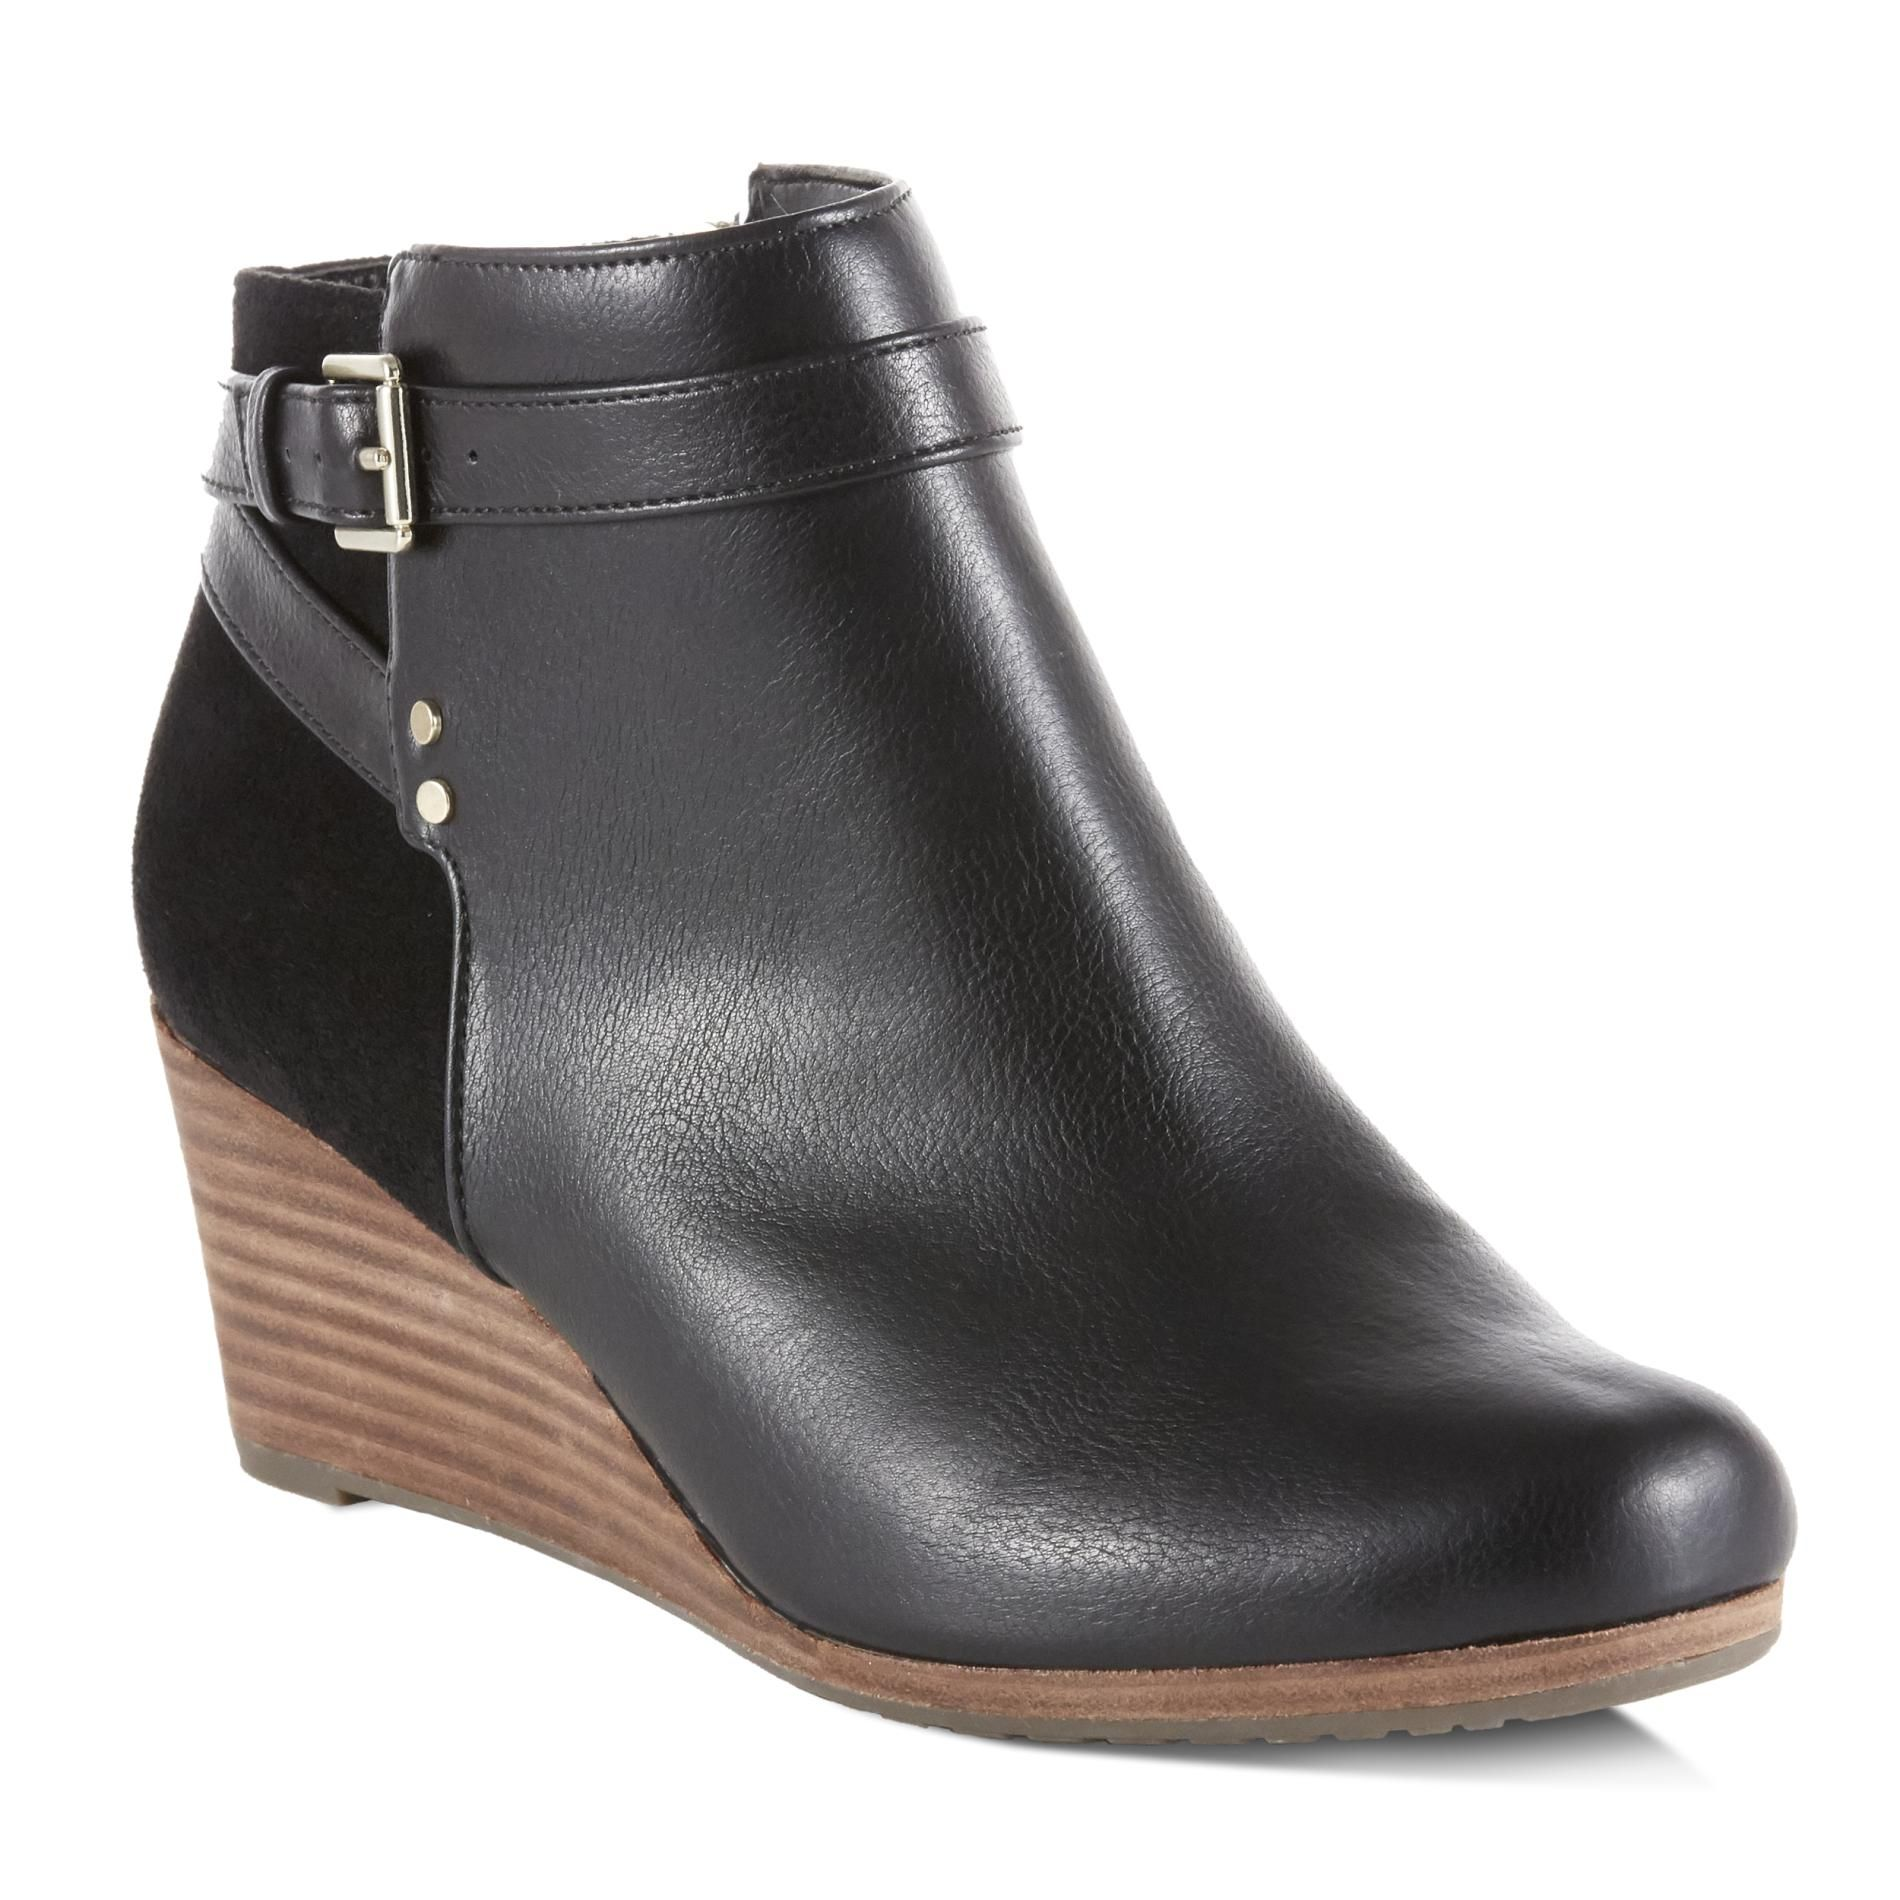 Walk With Modern Style And Maximum Comfort In These Women S Double Wedge Booties By Dr Scholl S These Ankle Boots Wedges Booties Womens Wedges Woman Booties